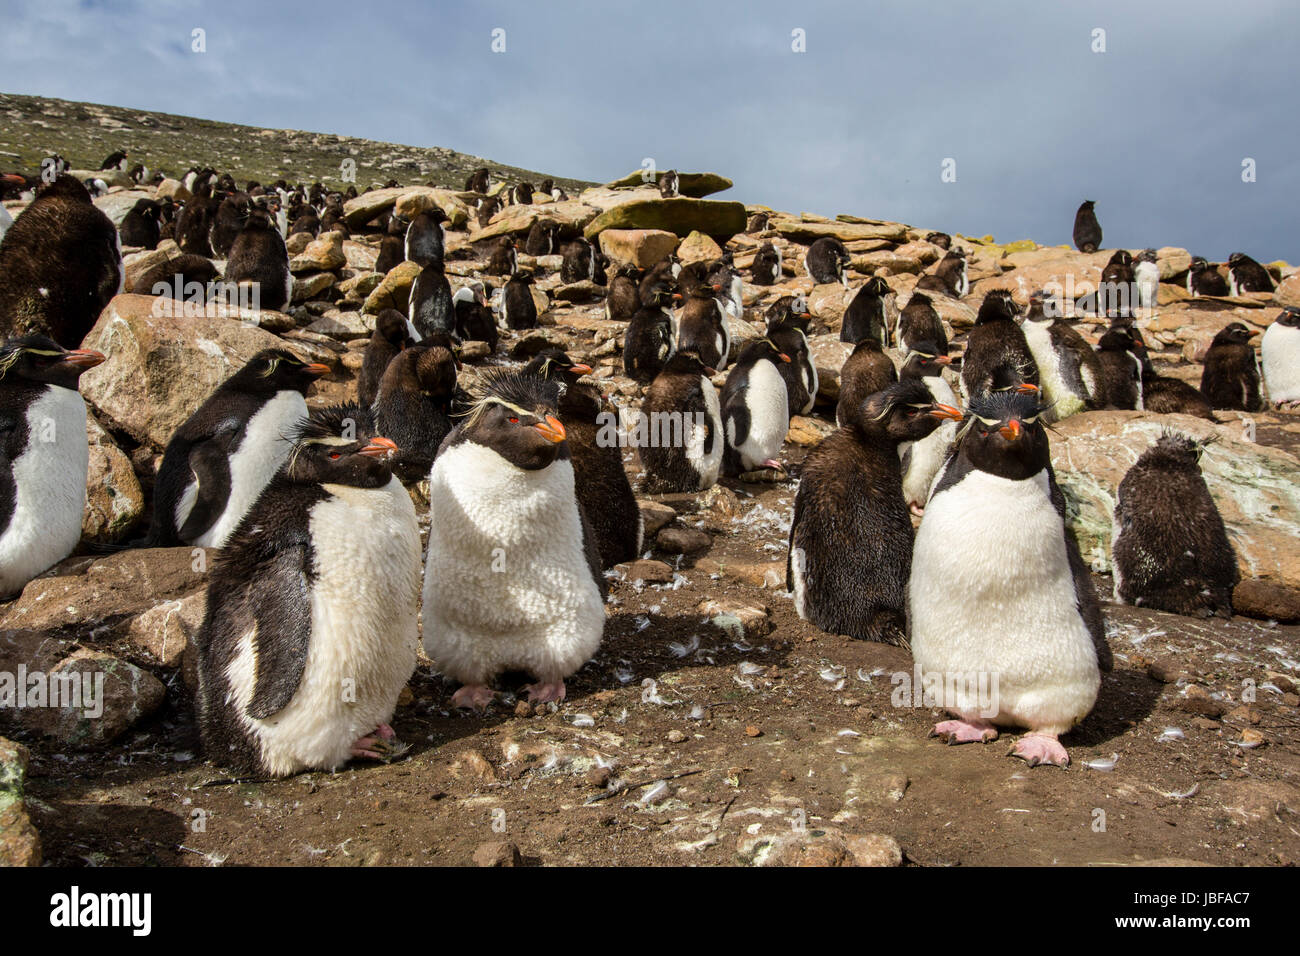 Crested Rockhopper penguins on Saunders Island, Falkland Islands - Stock Image